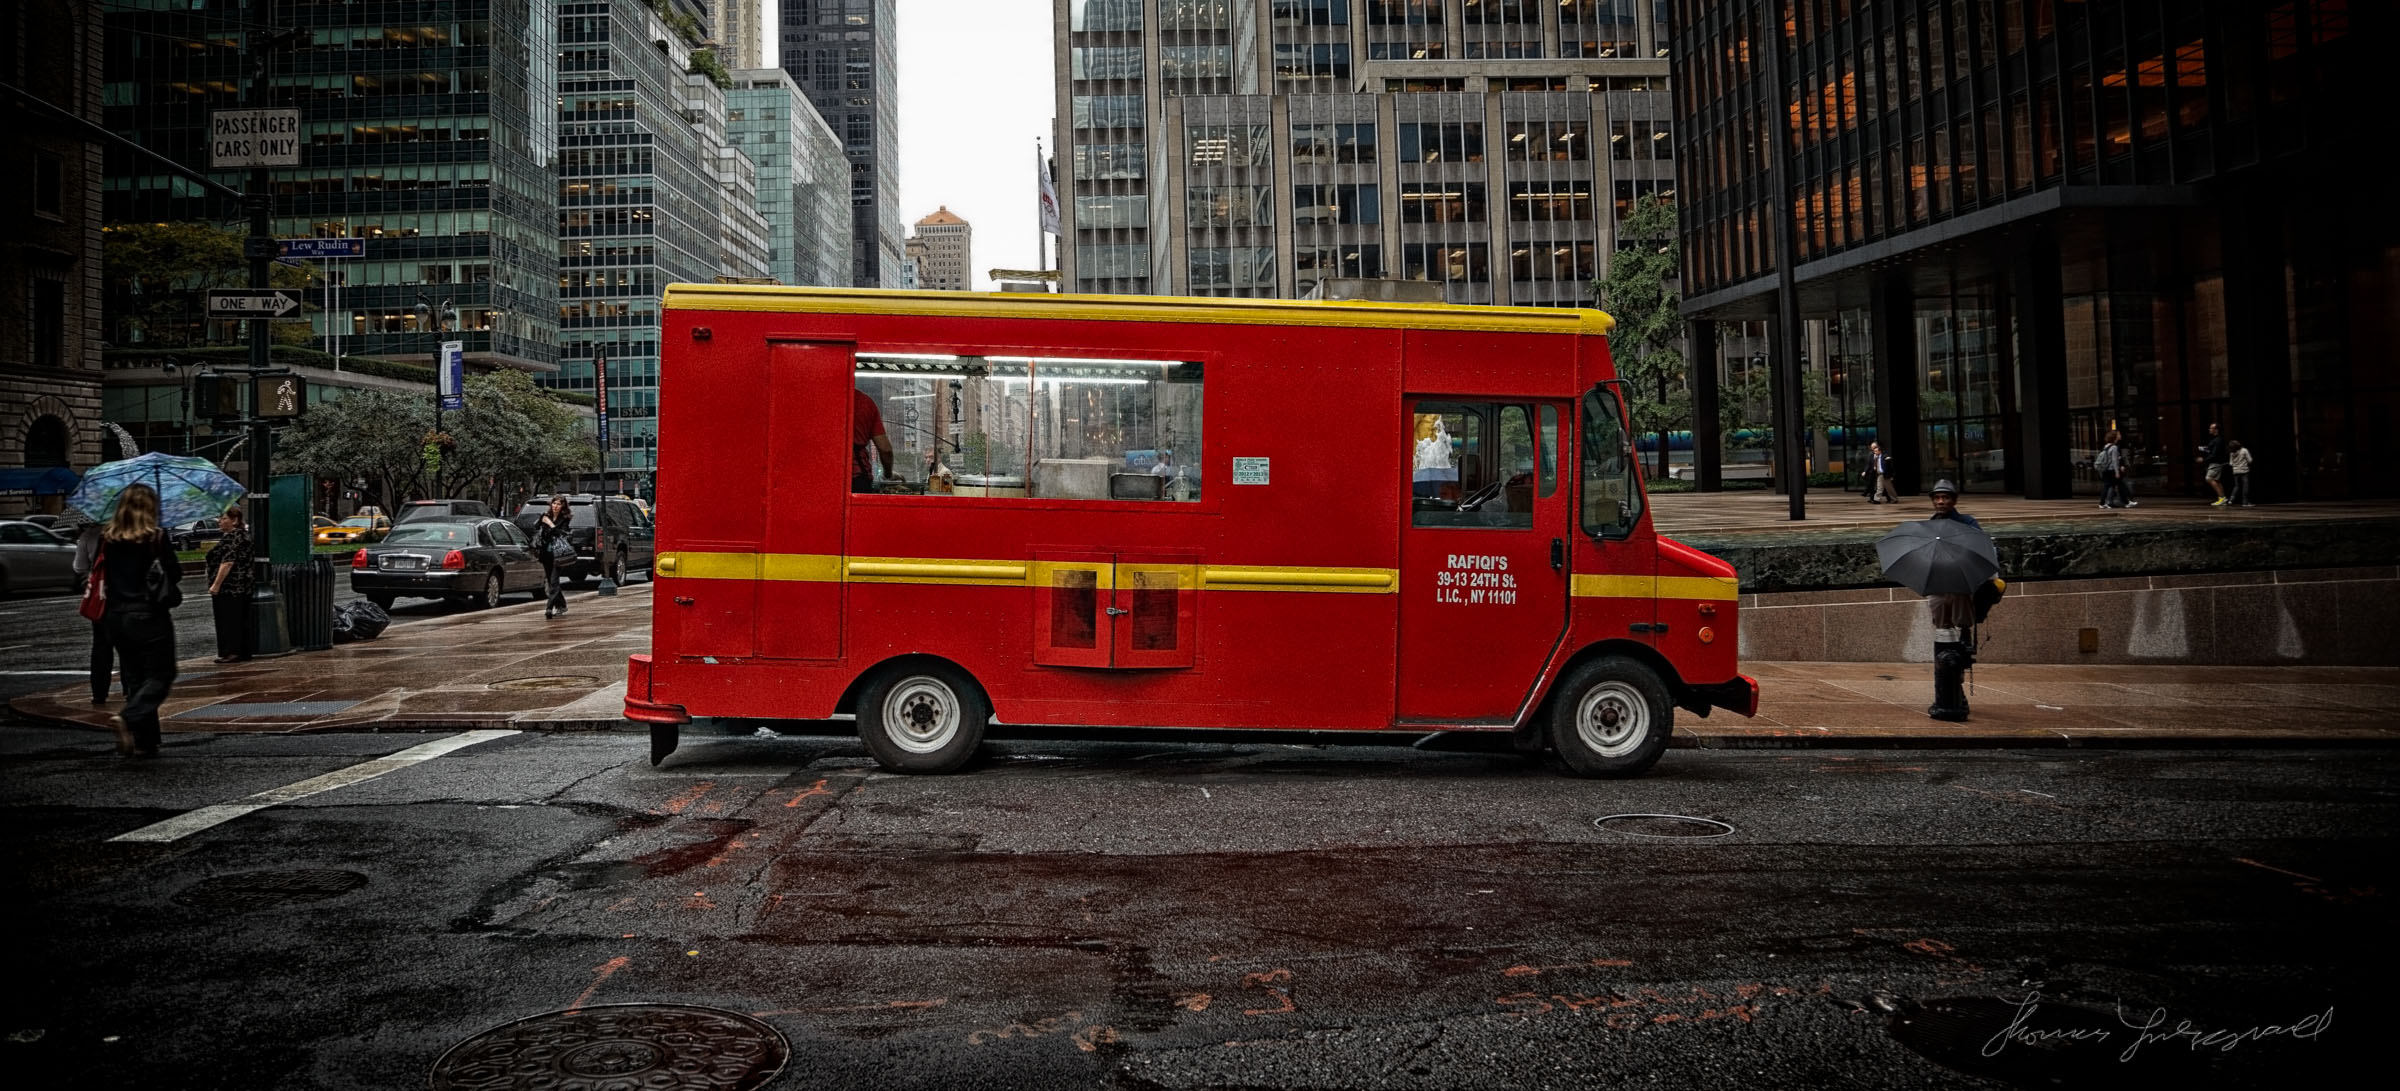 Food Truck in New York City